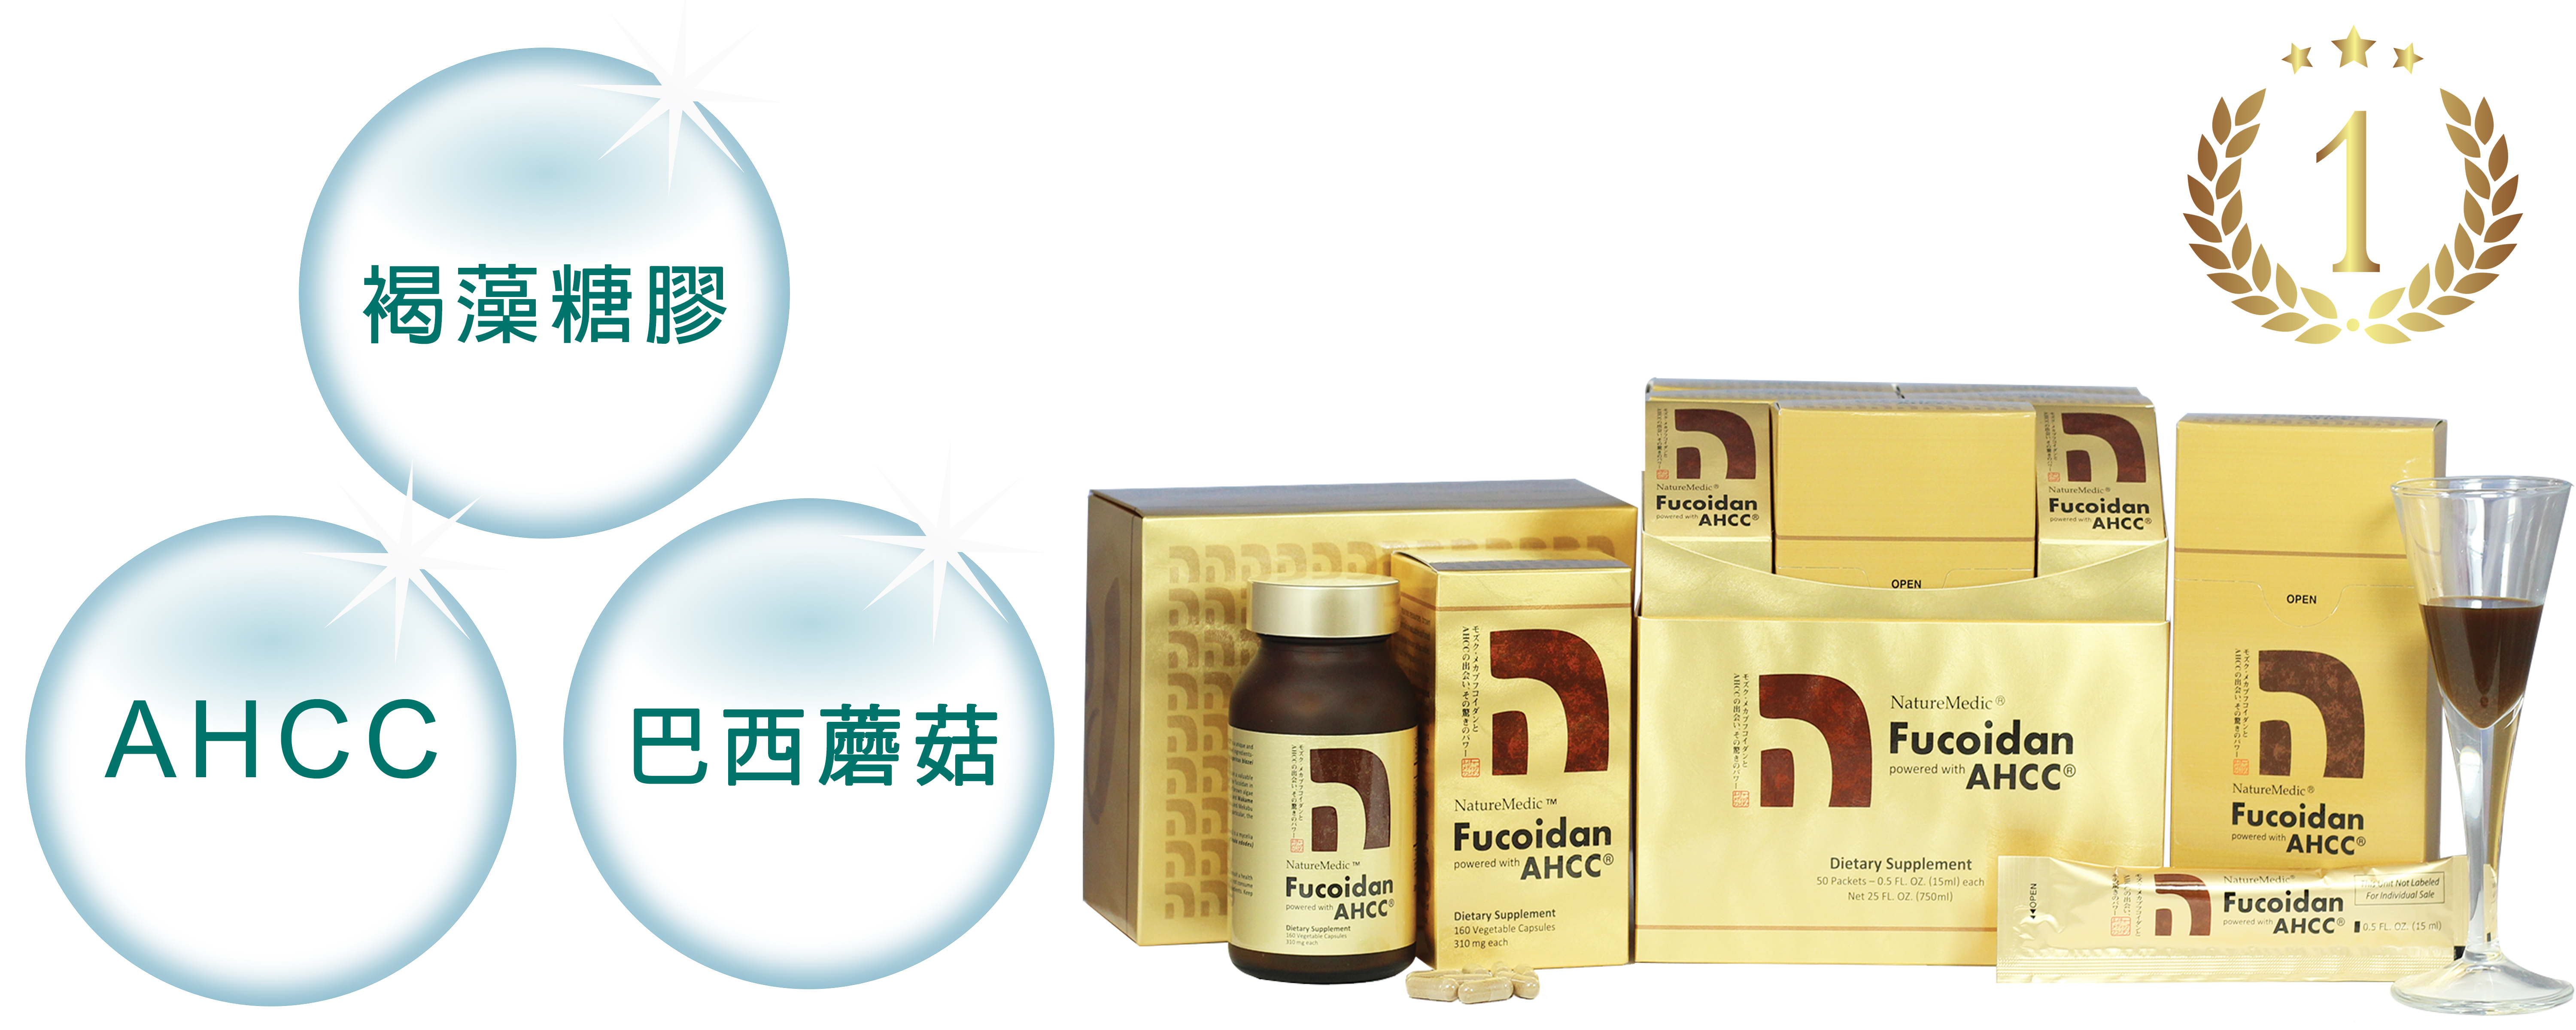 Fucoidan AHCC website-05b